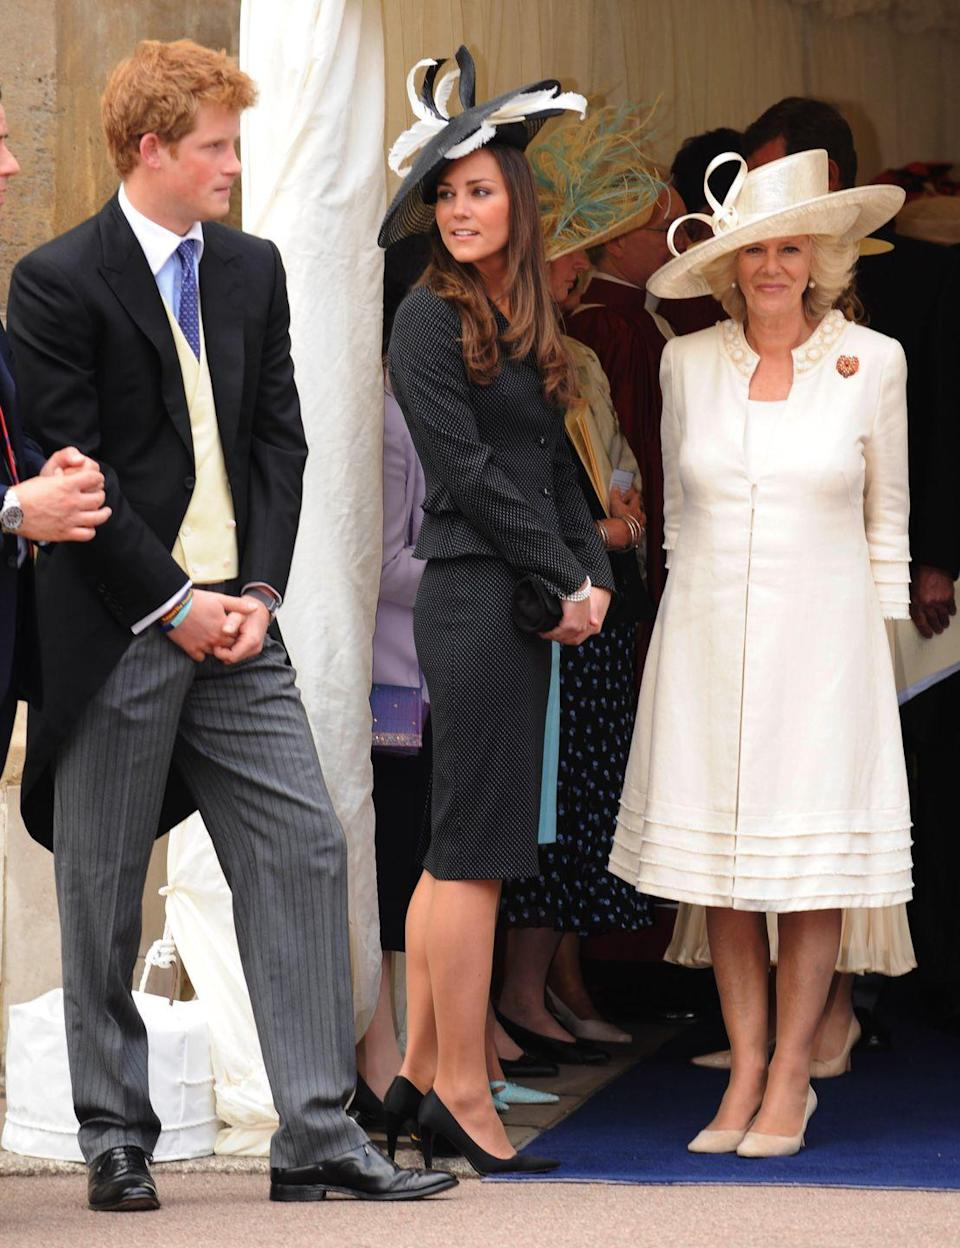 <p>Talking to Prince Harry and Camilla, Duchess of Cornwall, at the Order of the Garter service at St. George's Chapel, Windsor Castle. </p>